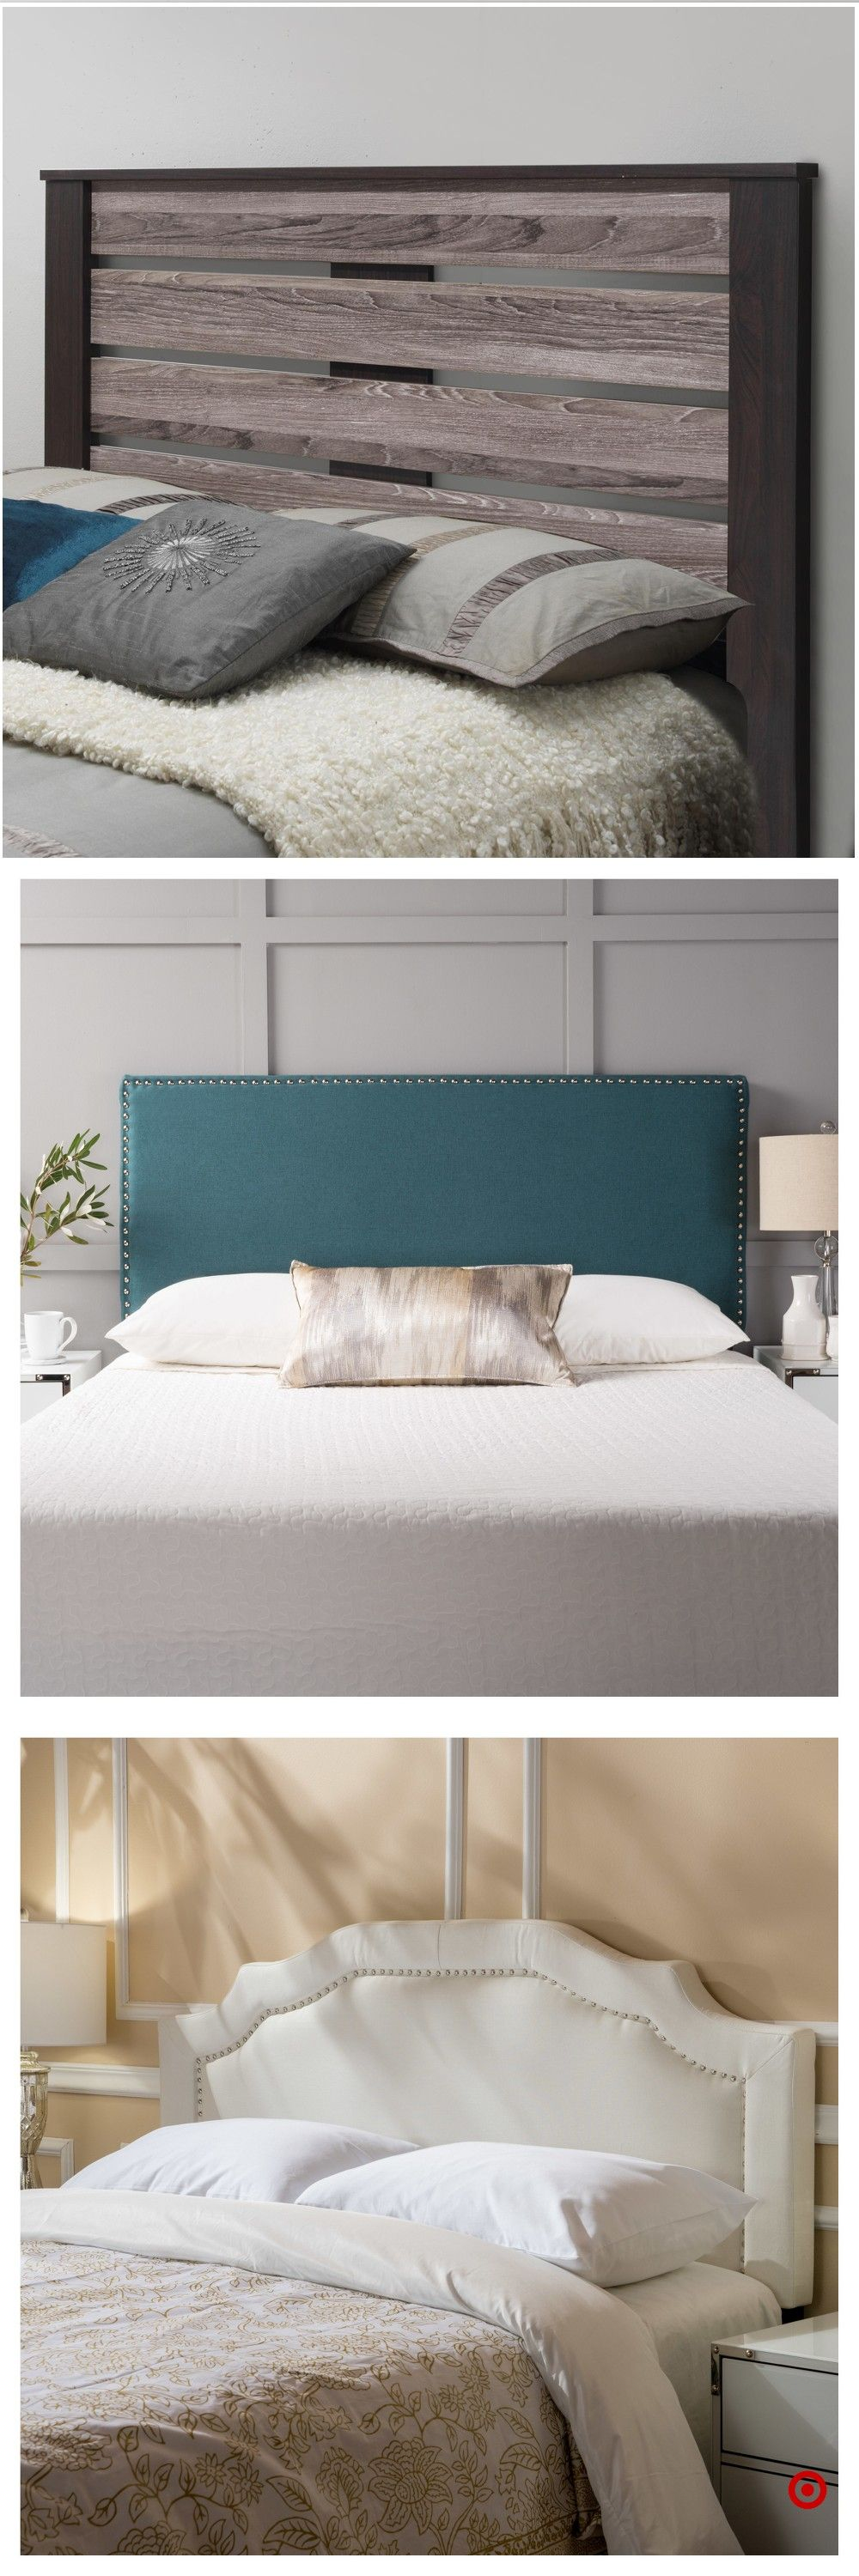 Shop Target For Adult Headboard You Will Love At Great Low